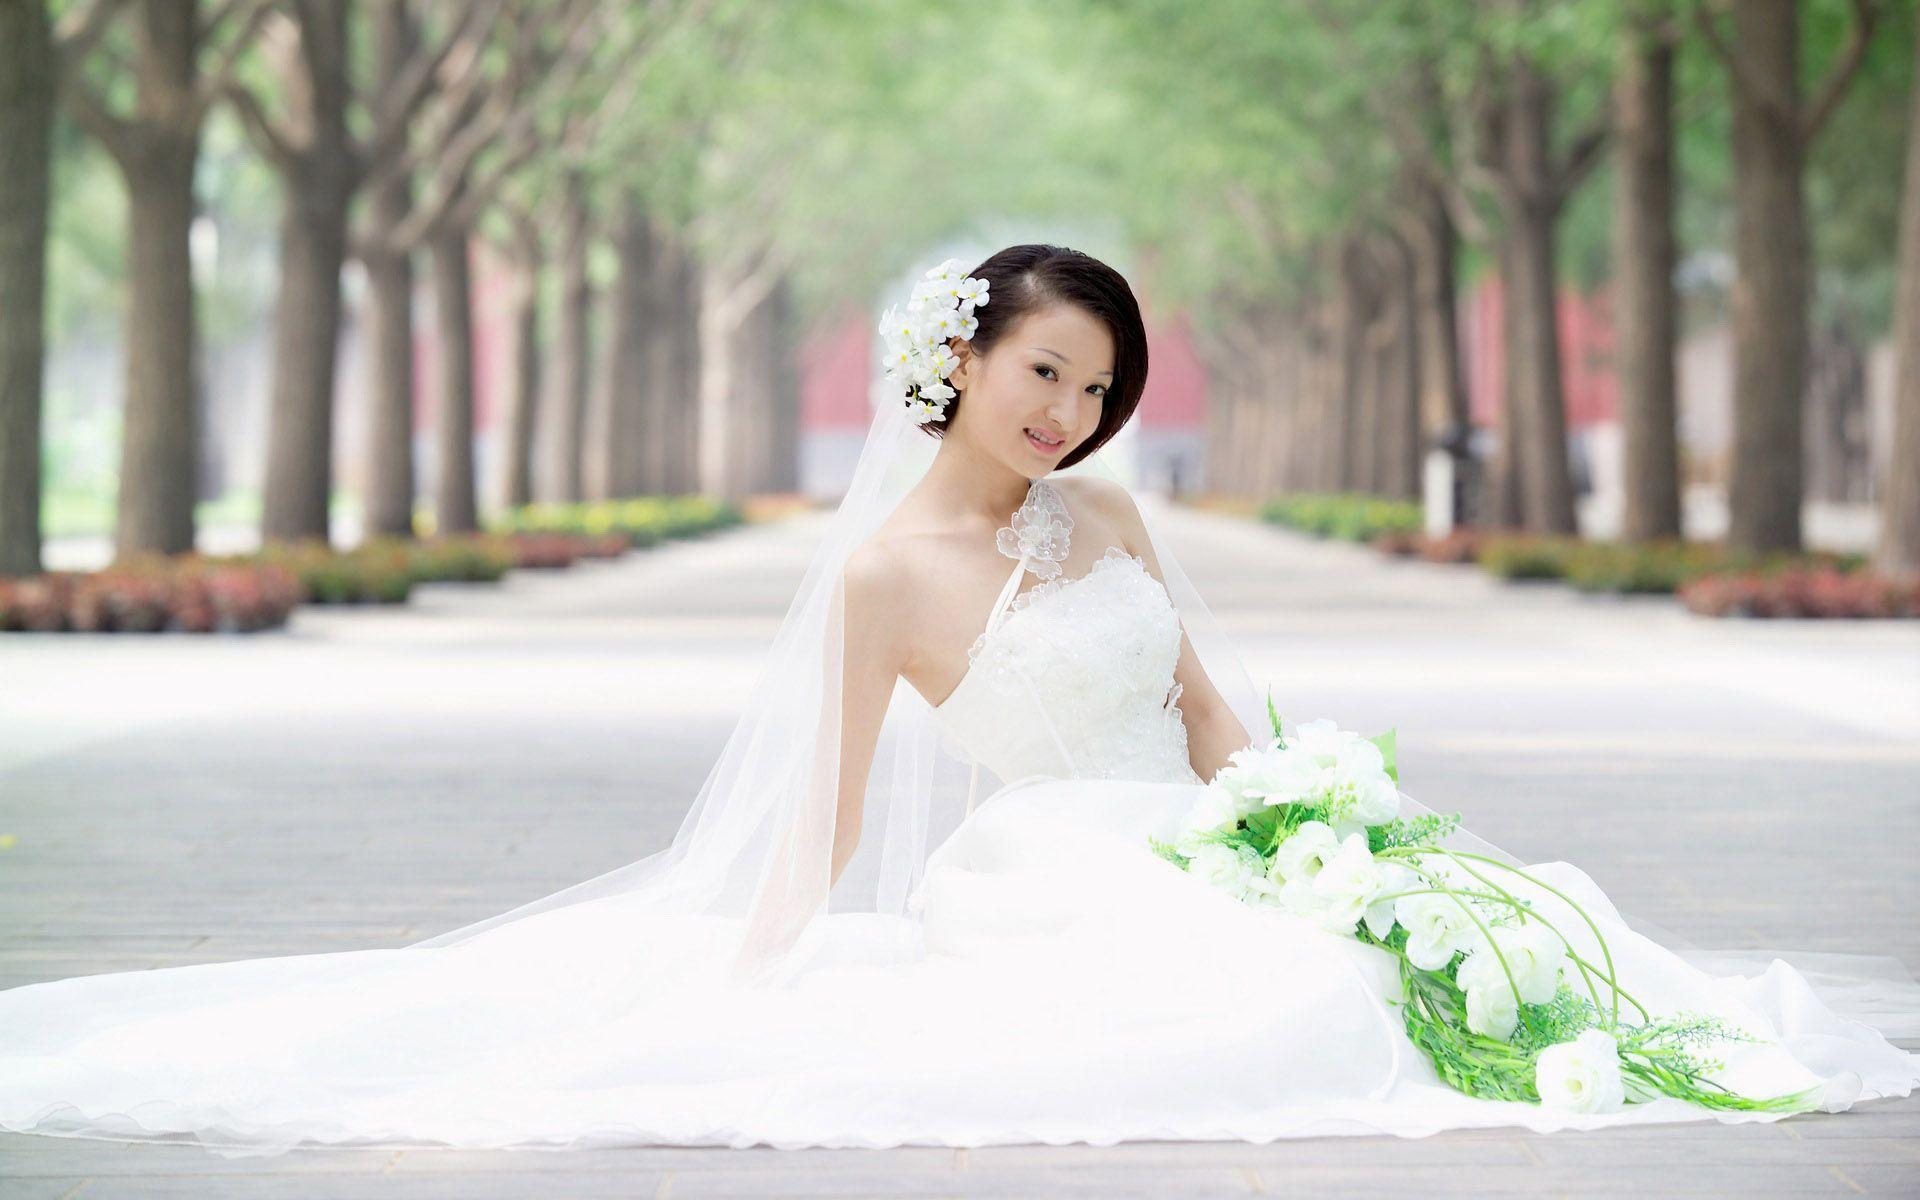 Wedding Dress Wallpapers - Wallpaper Cave